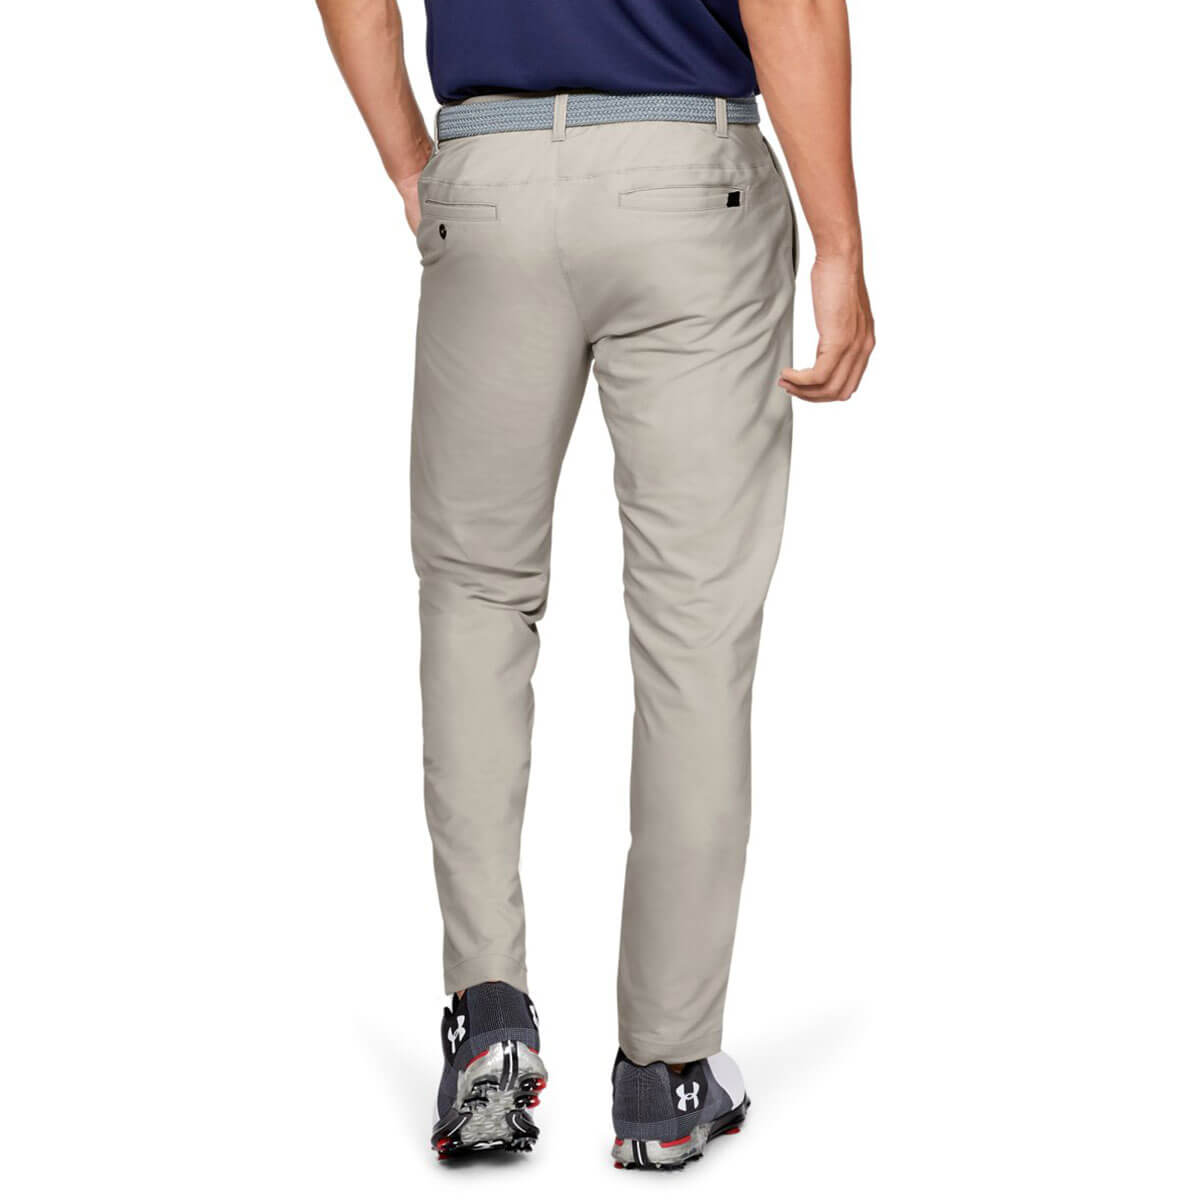 Under-Armour-Mens-2019-EU-Performance-Slim-Taper-Soft-Stretch-Golf-Trousers thumbnail 11